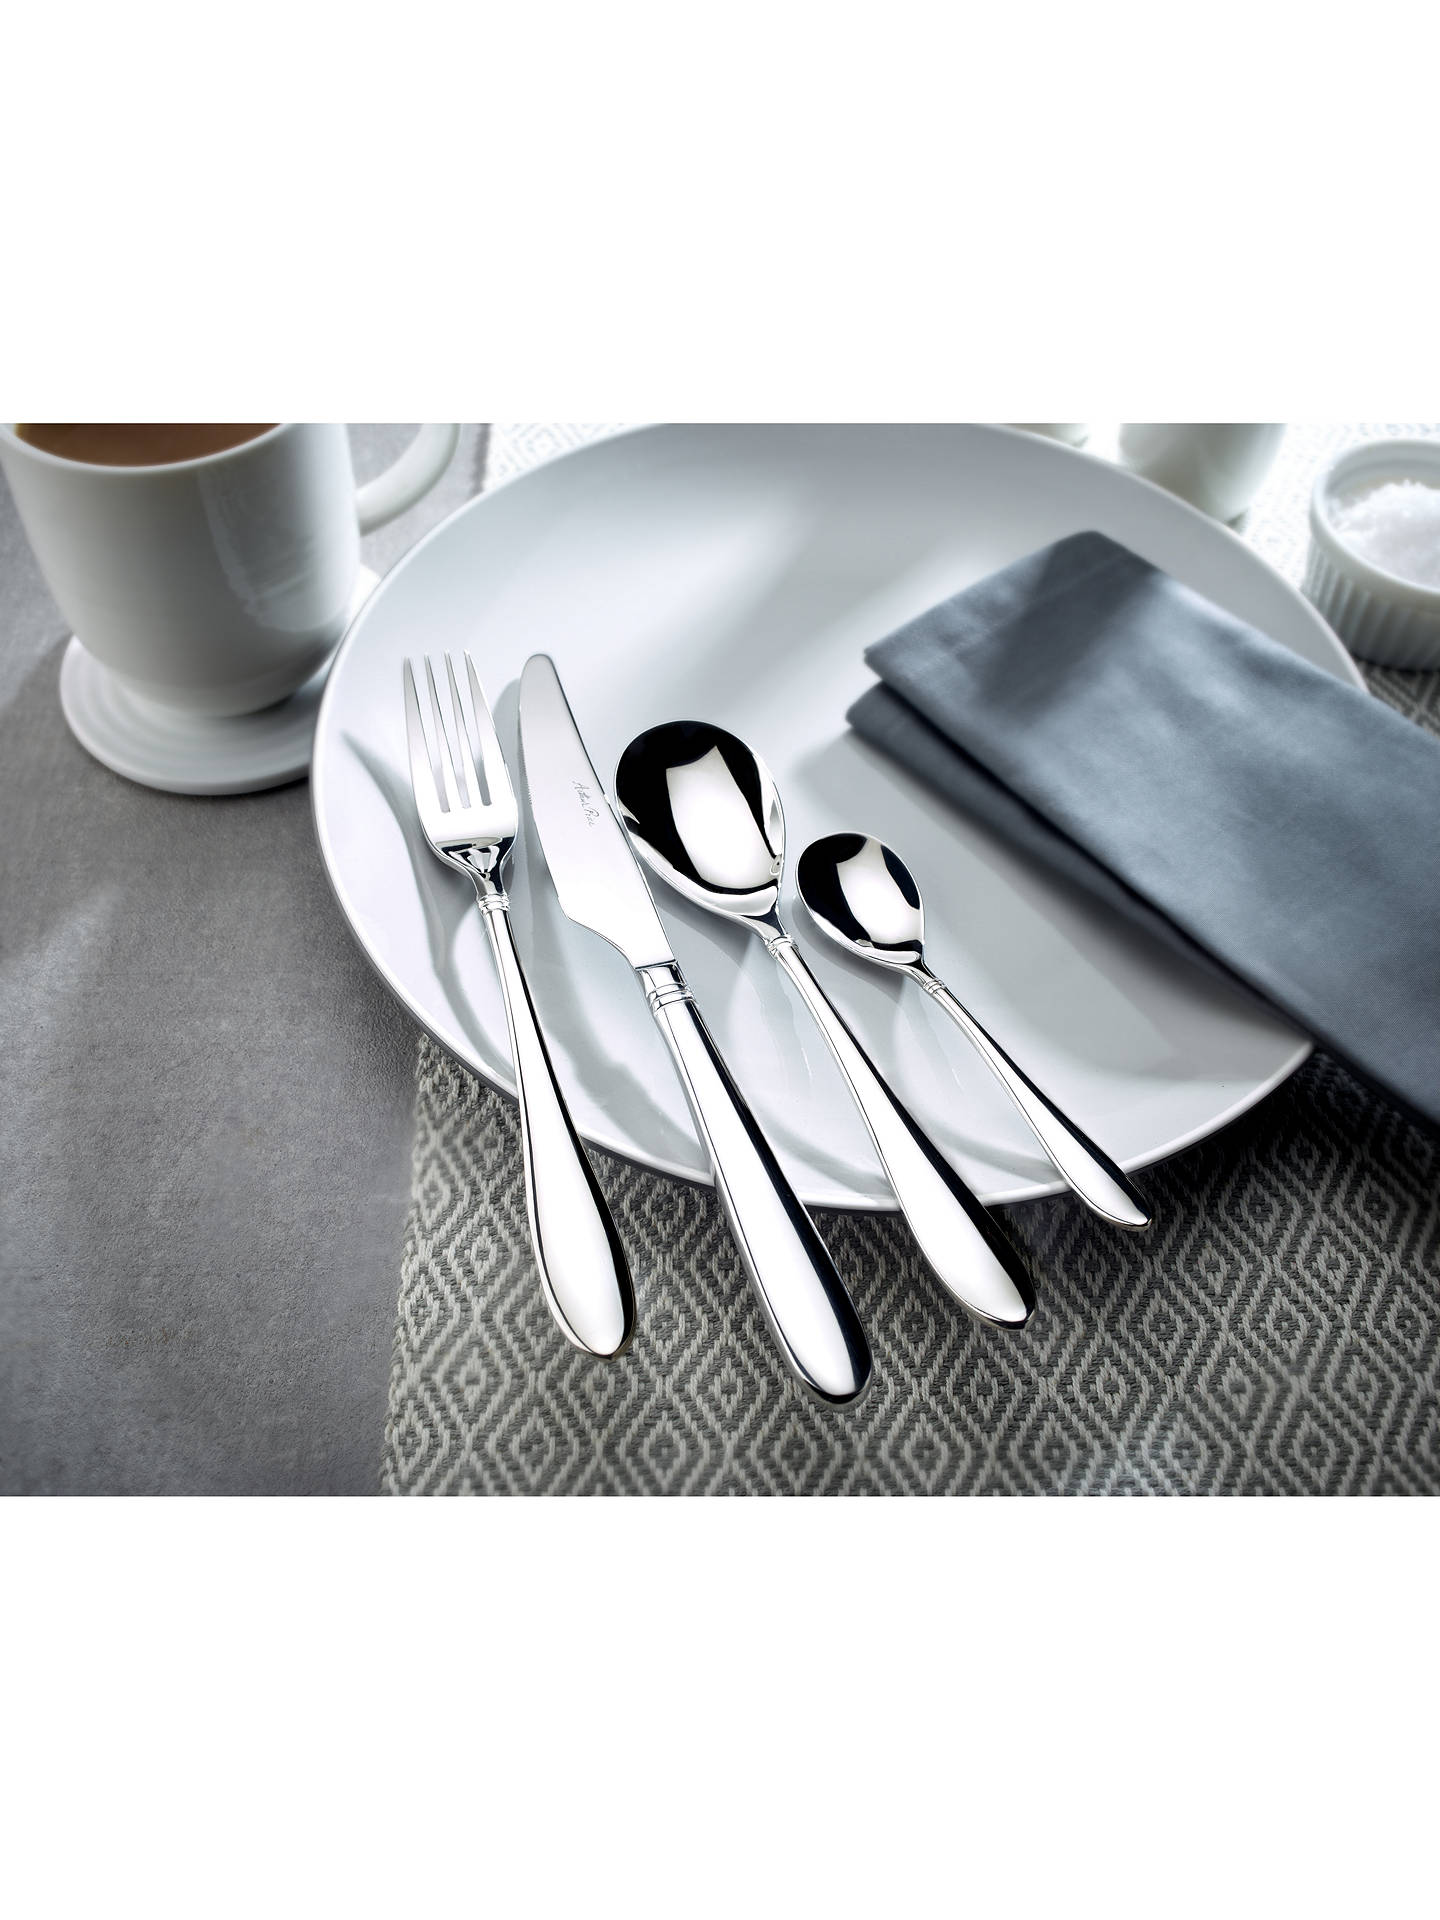 Buy Arthur Price Henley Cutlery Set, 42 Piece Online at johnlewis.com